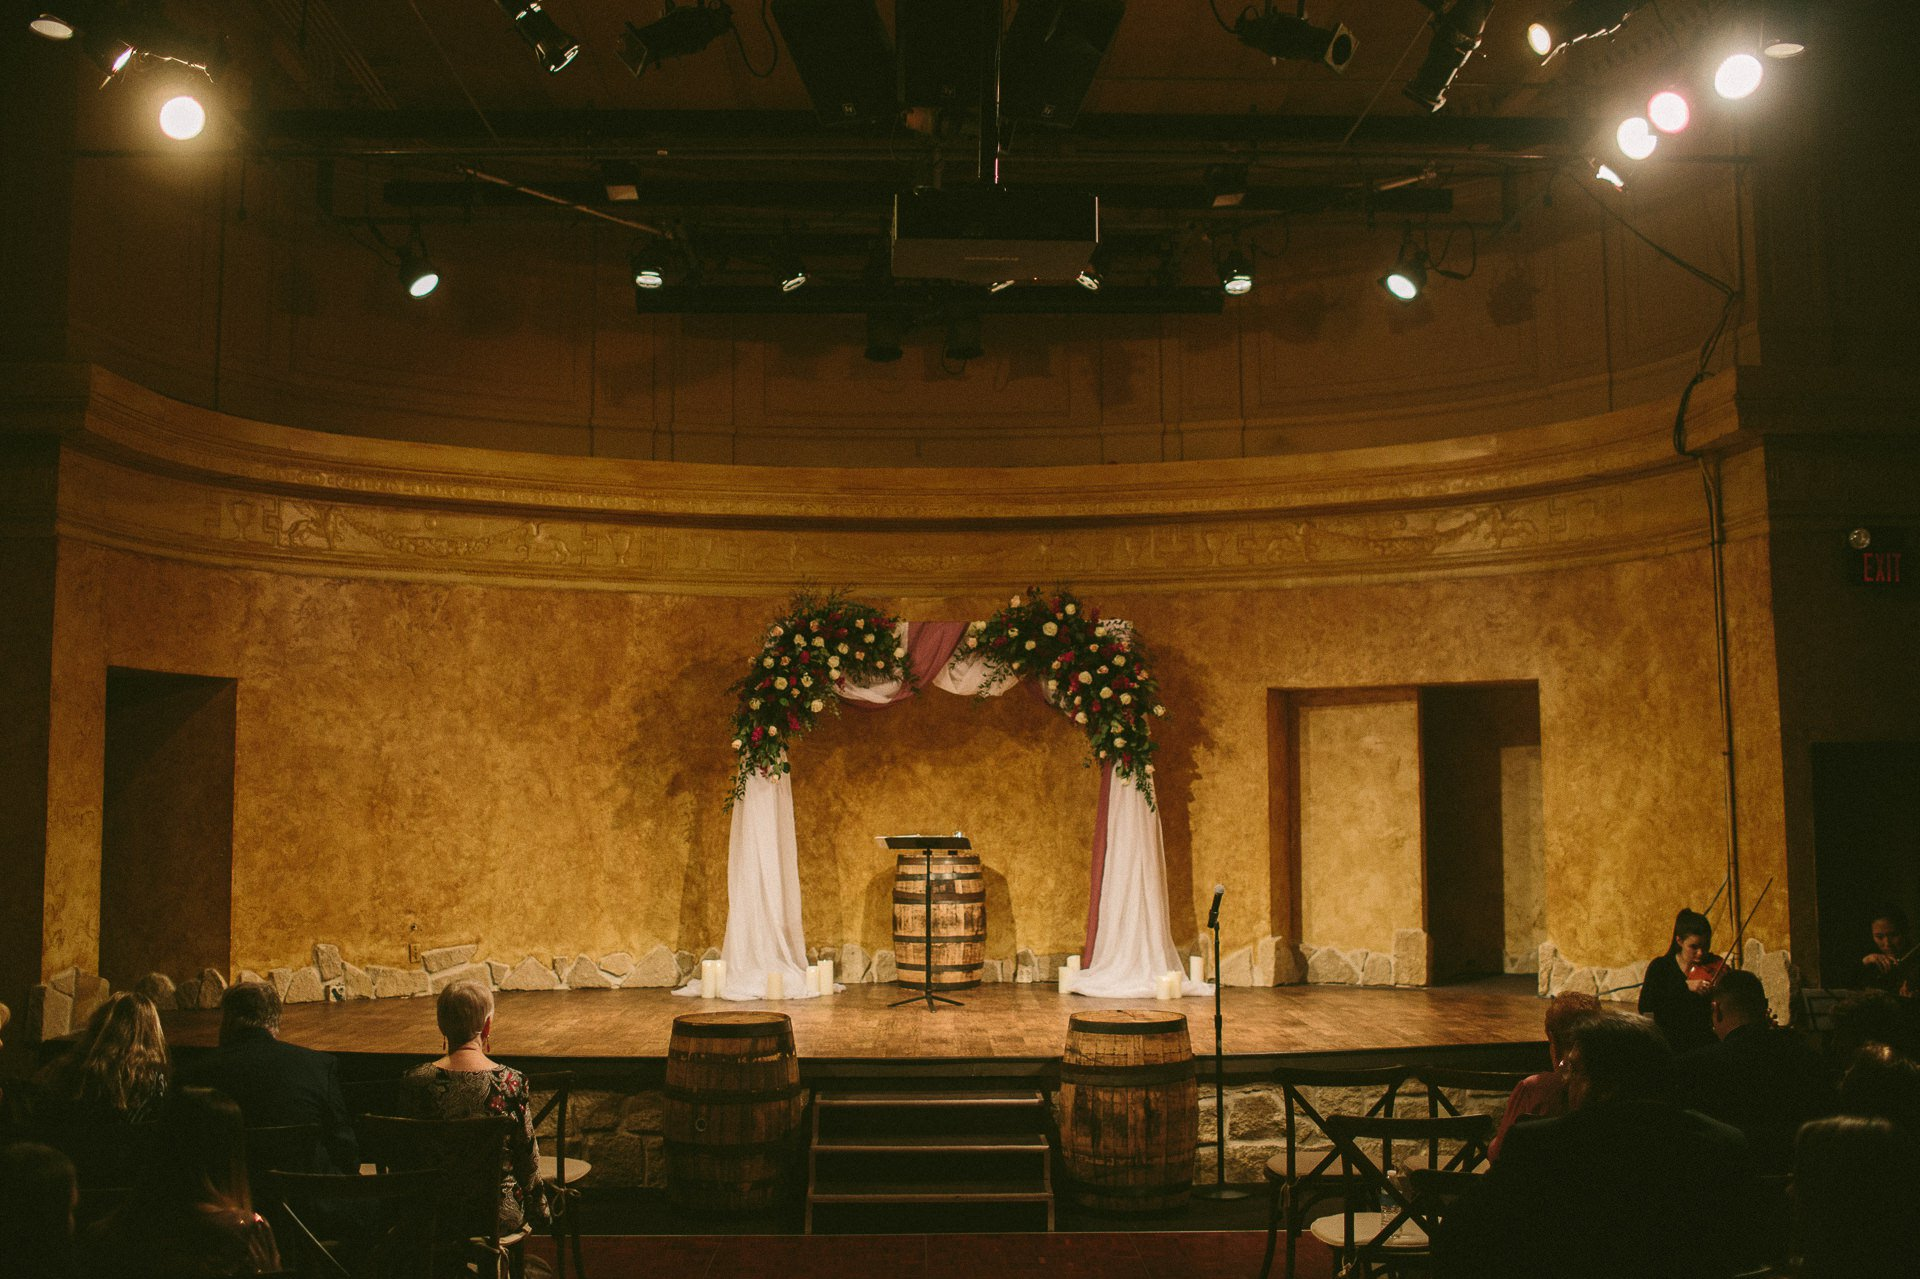 Cibreo Privato Wedding at Playhouse Square in Cleveland 1 38.jpg